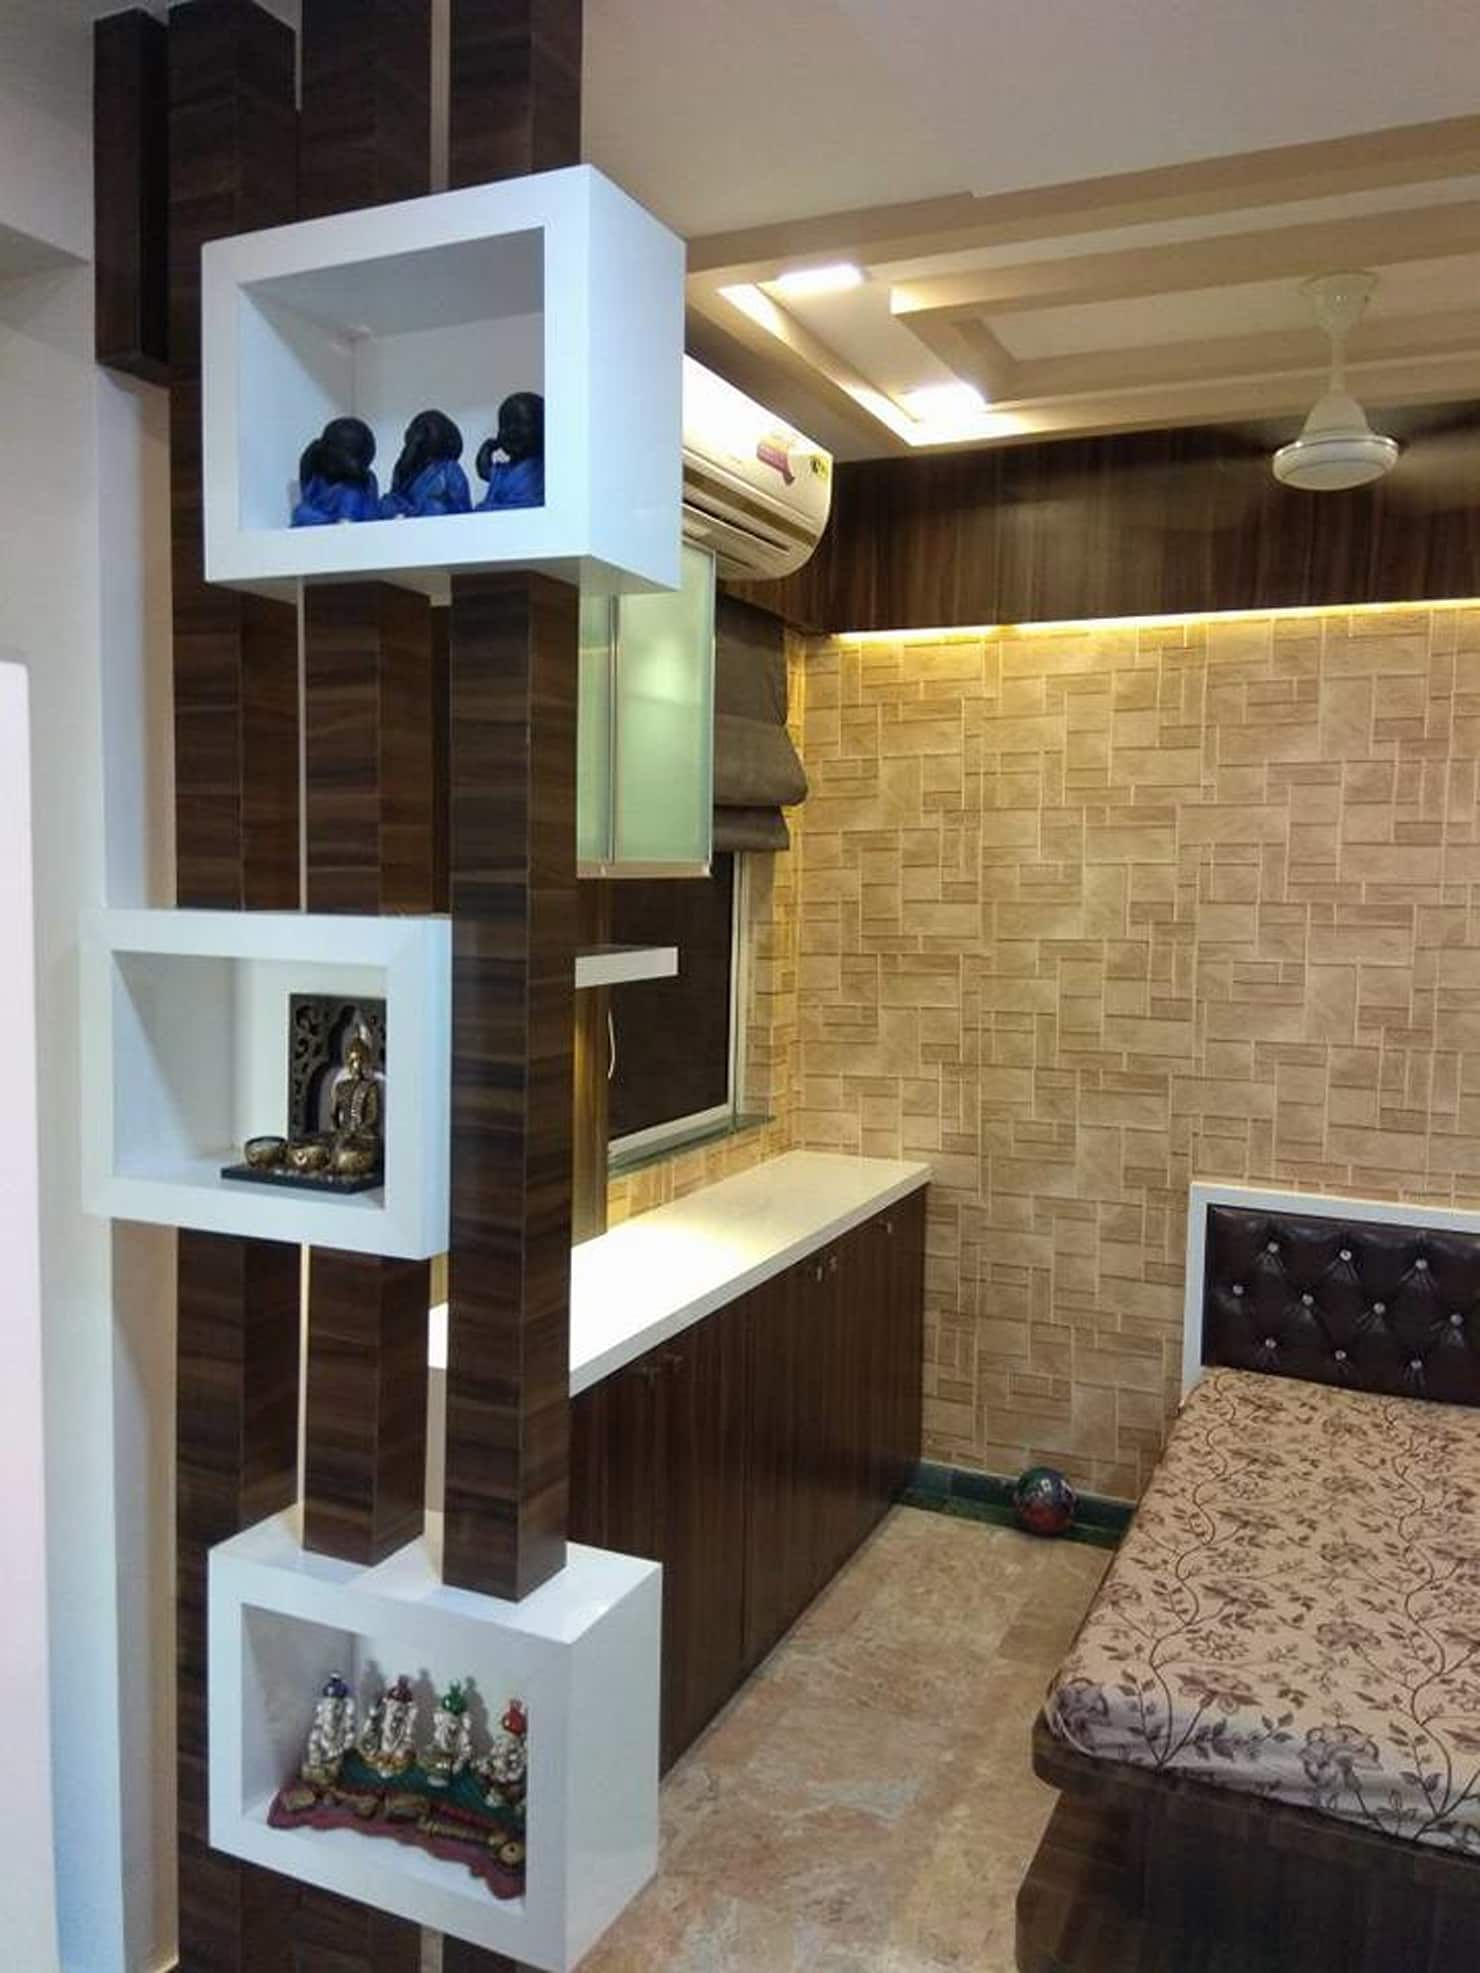 Side bar cum cabinate at living room by kumar interior thane also rh pinterest